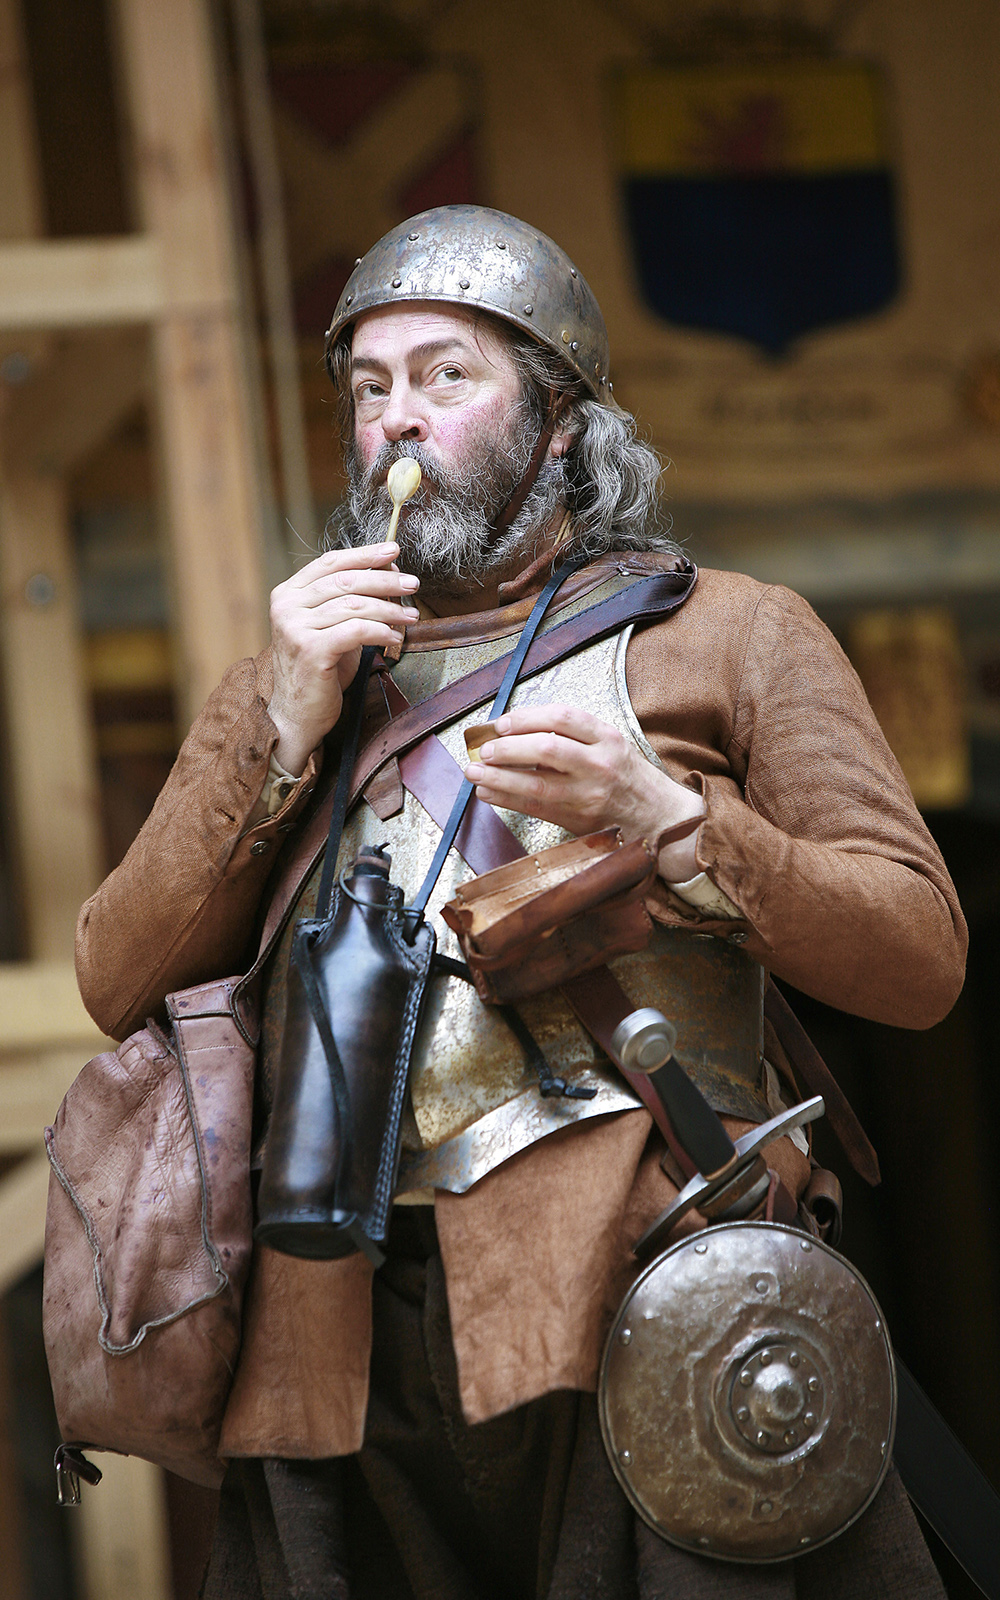 Actor on stage with a wooden spoon on there mouth